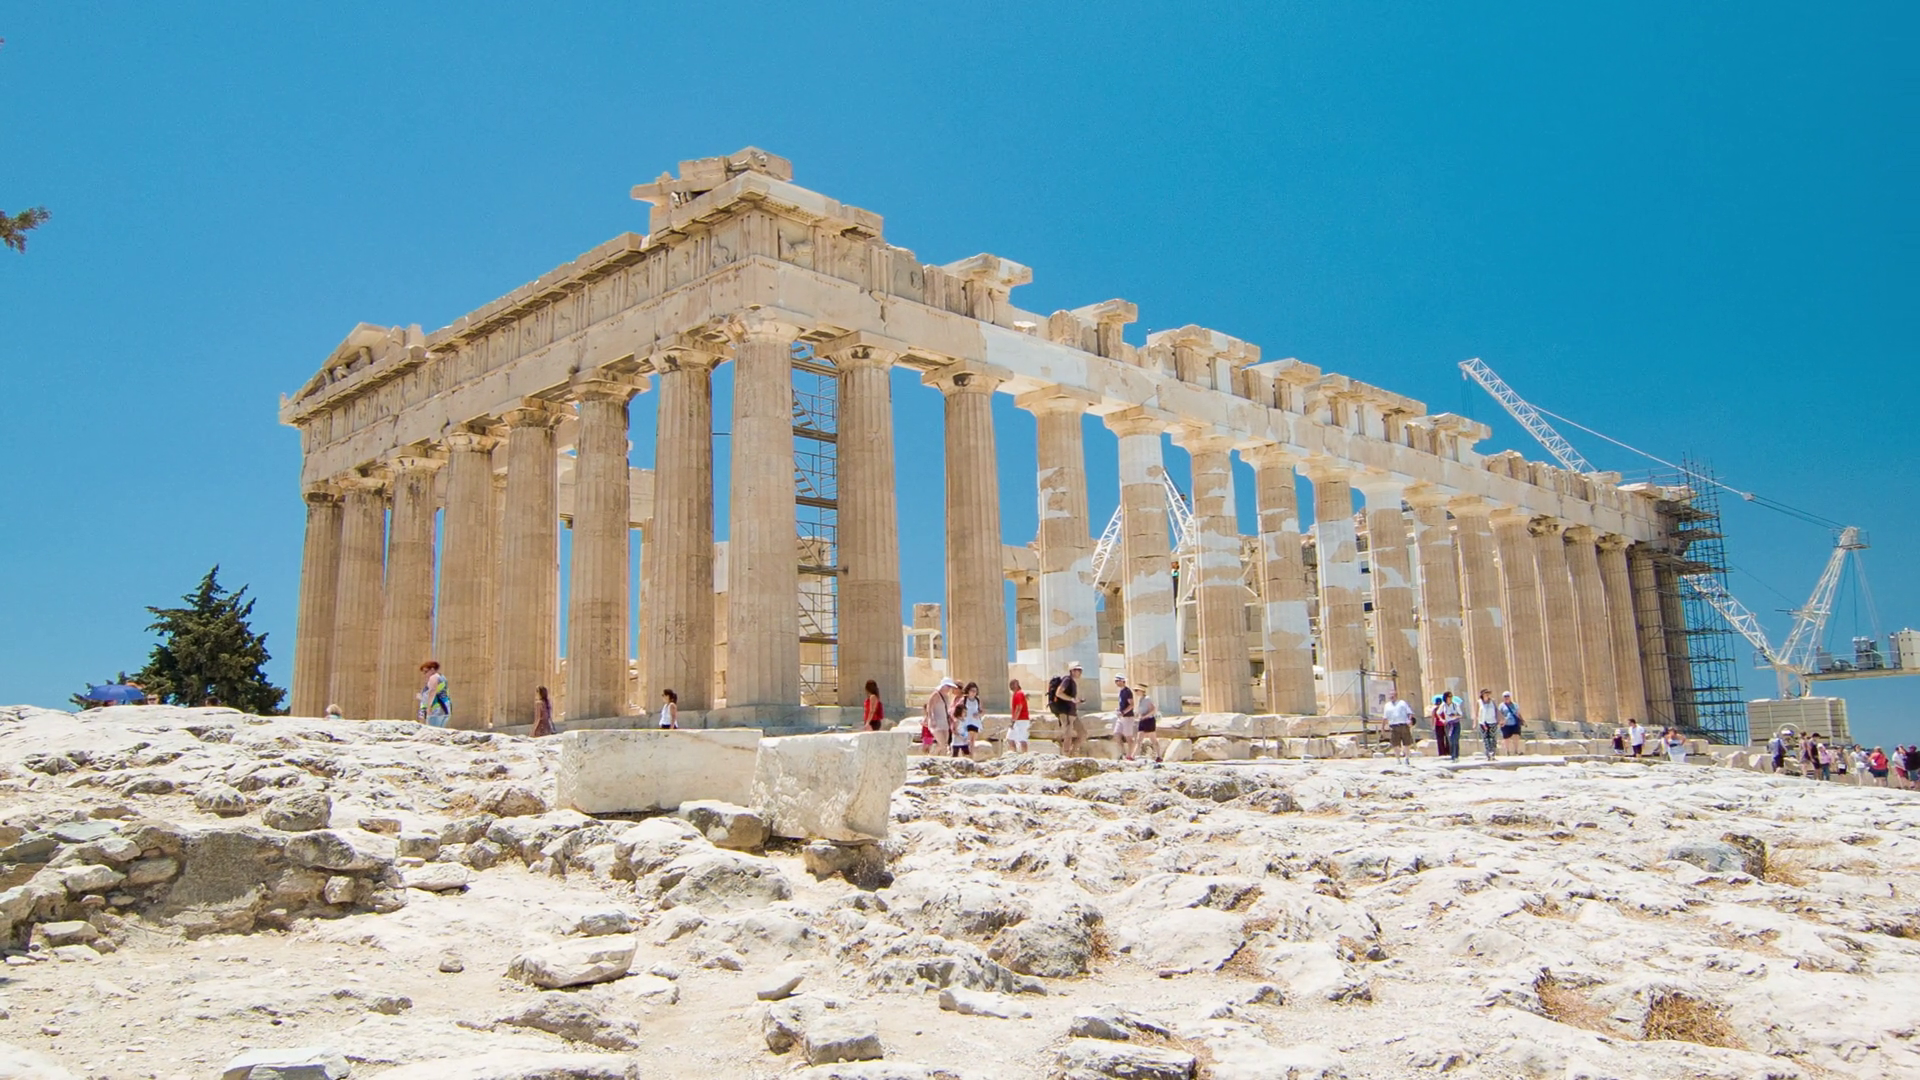 The Parthenon at the Acropolis in Athens Greece Side Angle View with  Visitors Sightseeing the Iconic Ancient Greek Hilltop Temple Monument Stock  Video PlusPng.com  - Ancient Greece PNG HD